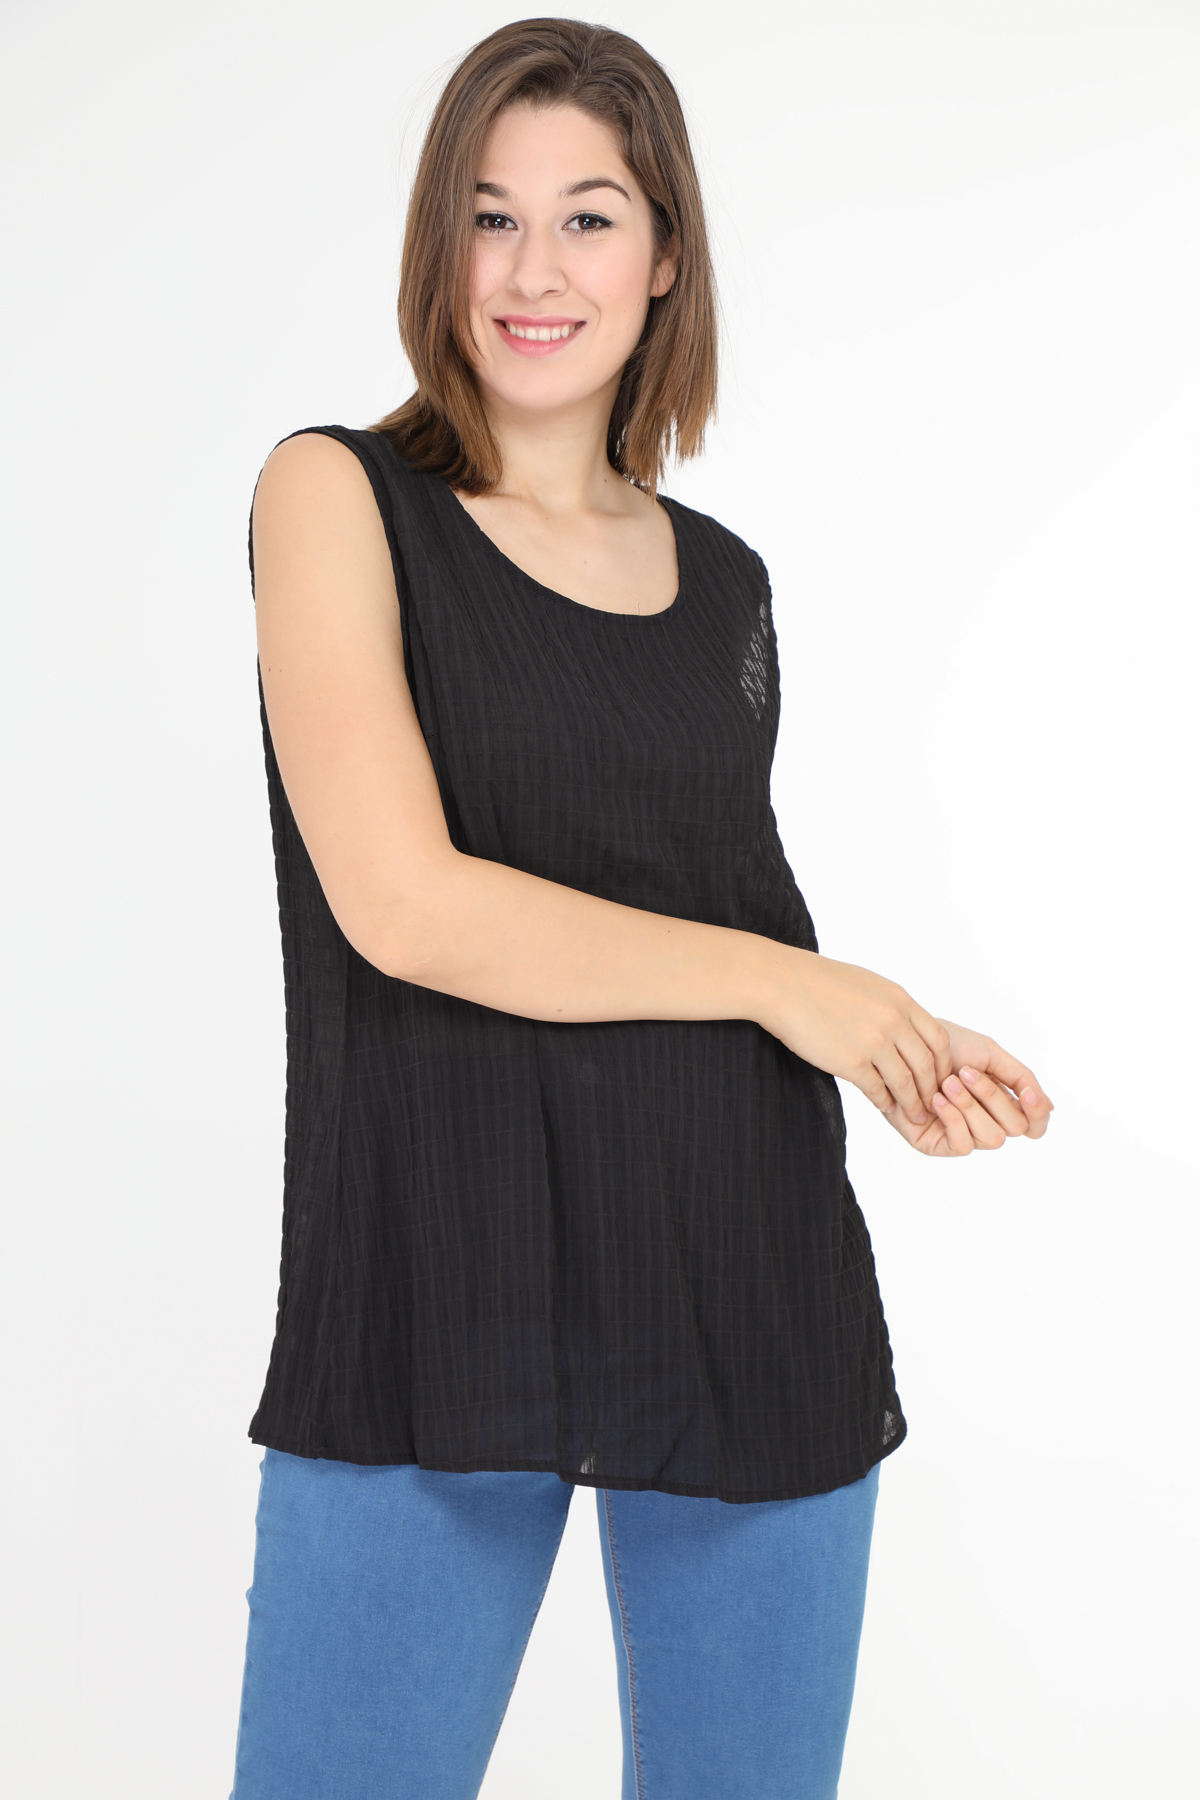 Tops Femme Noir Christy 361 #c eFashion Paris